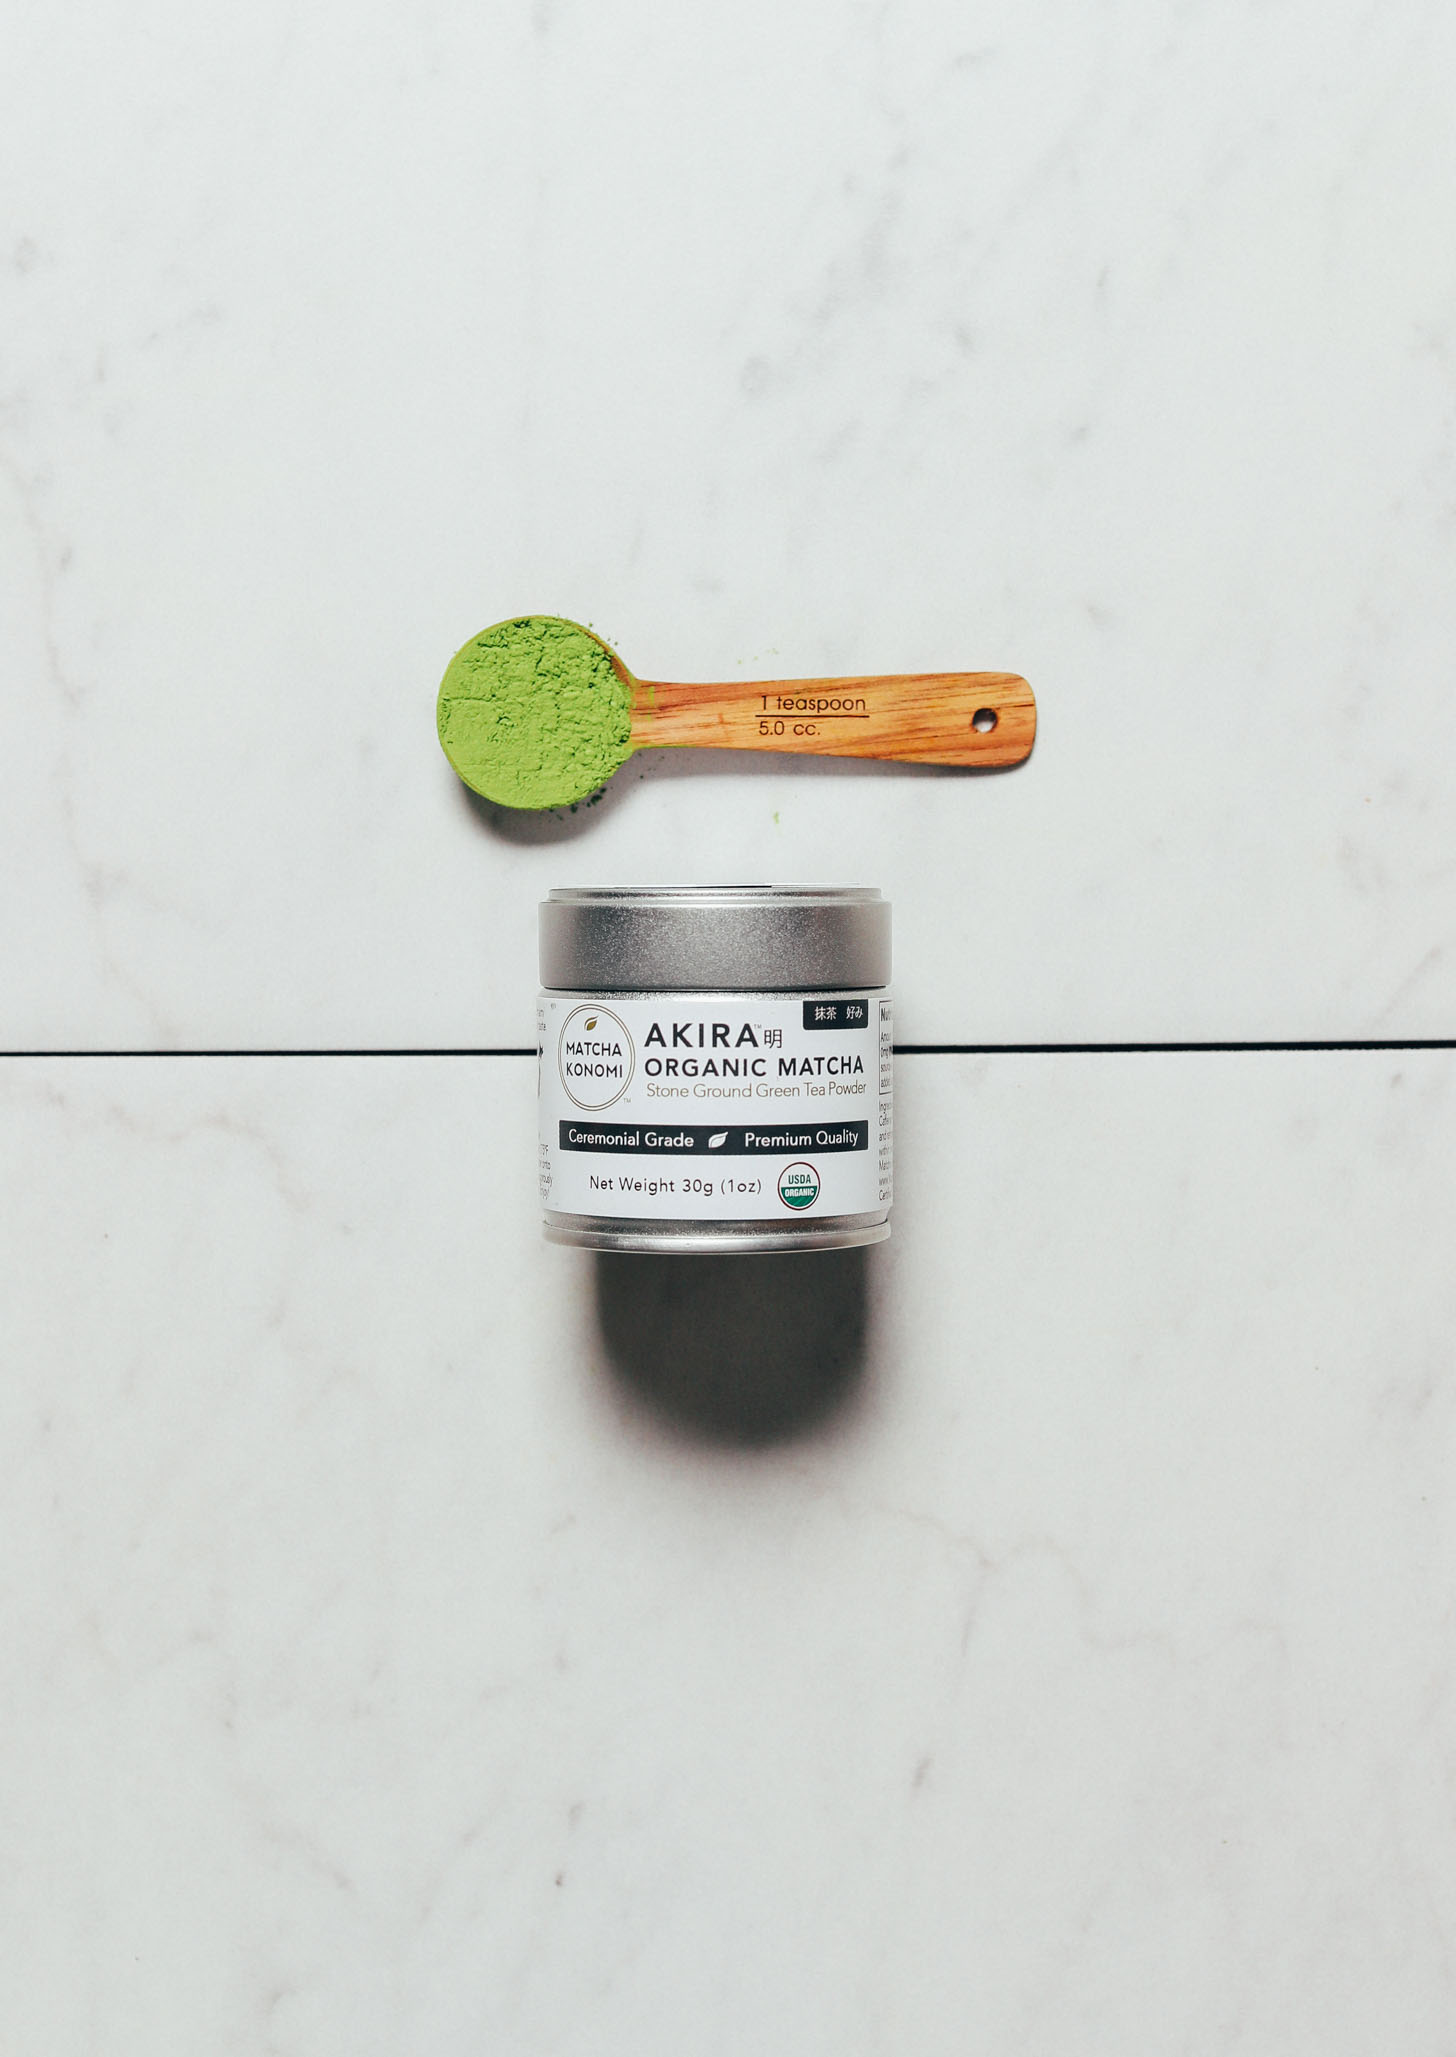 Spoonful and jar of Matcha Konomi Akira Matcha Powder for our review of the best brands of matcha